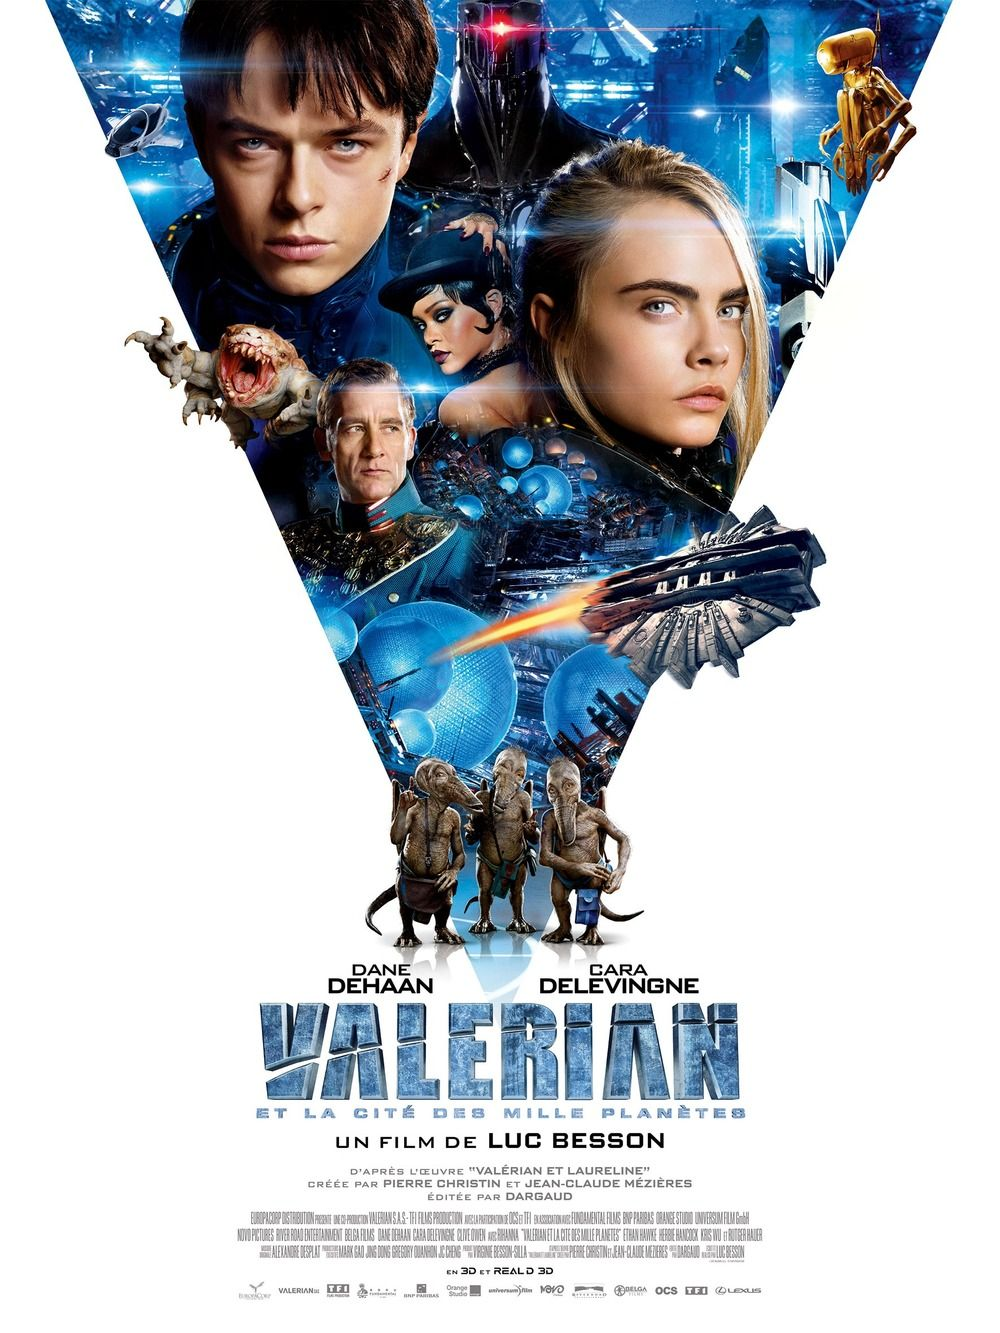 Download Valerian And The City Of A Thousand Planets 2017 Movie Full Planet Movie Free Movies Online Full Movies Online Free